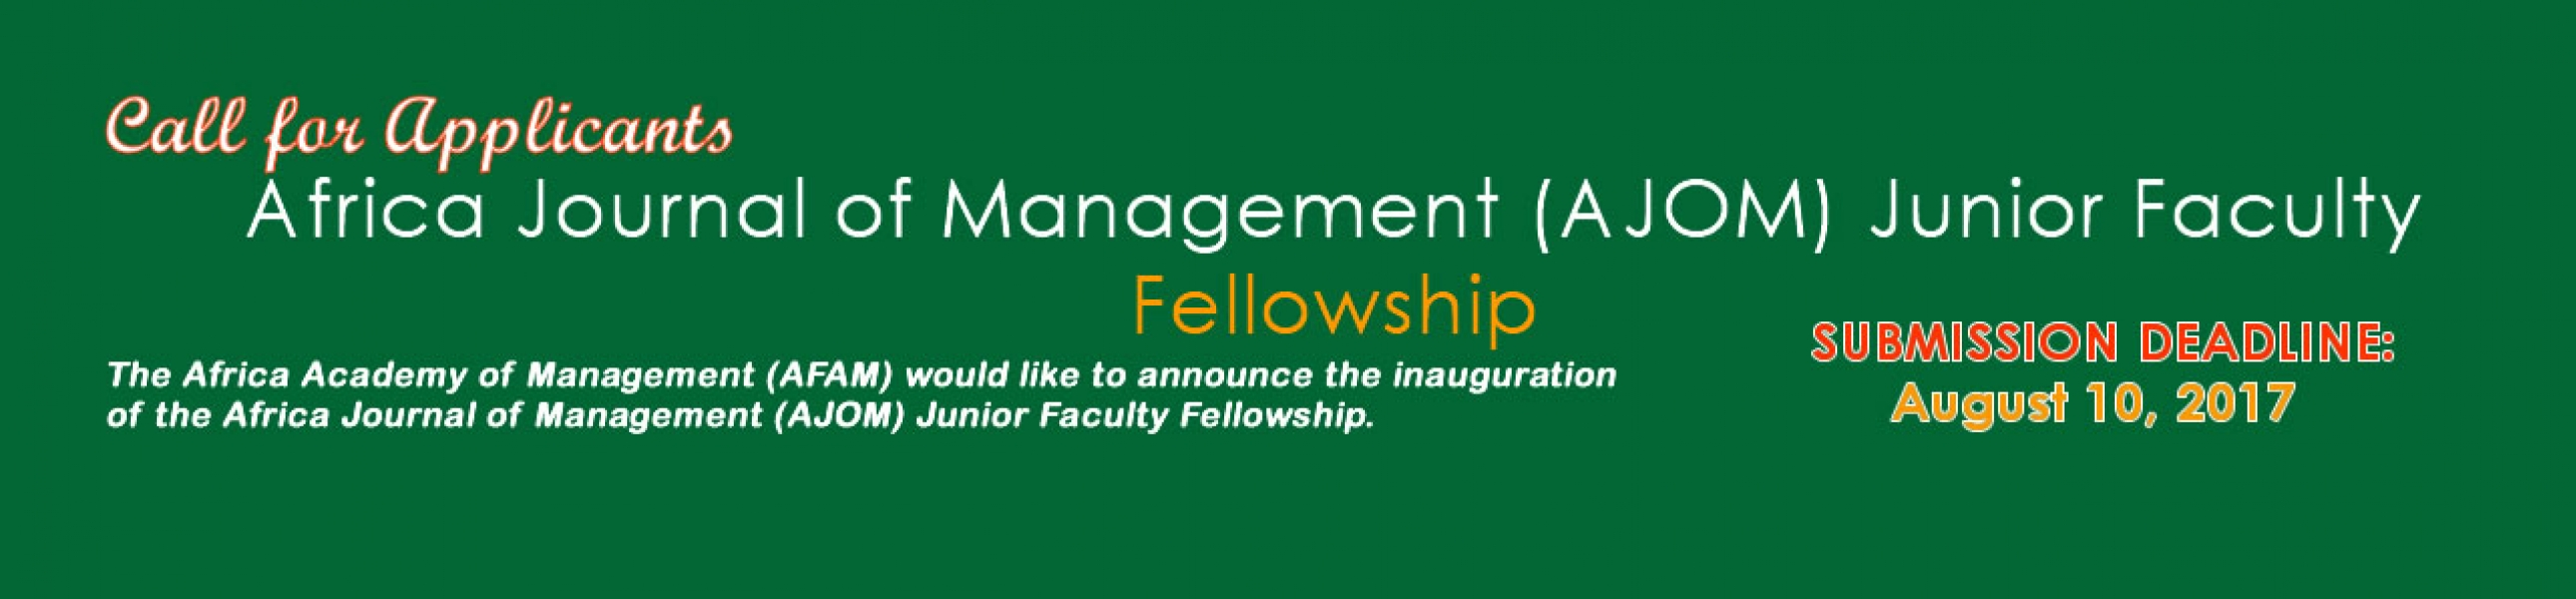 Africa Journal of Management (AJOM) Junior Faculty Fellowship